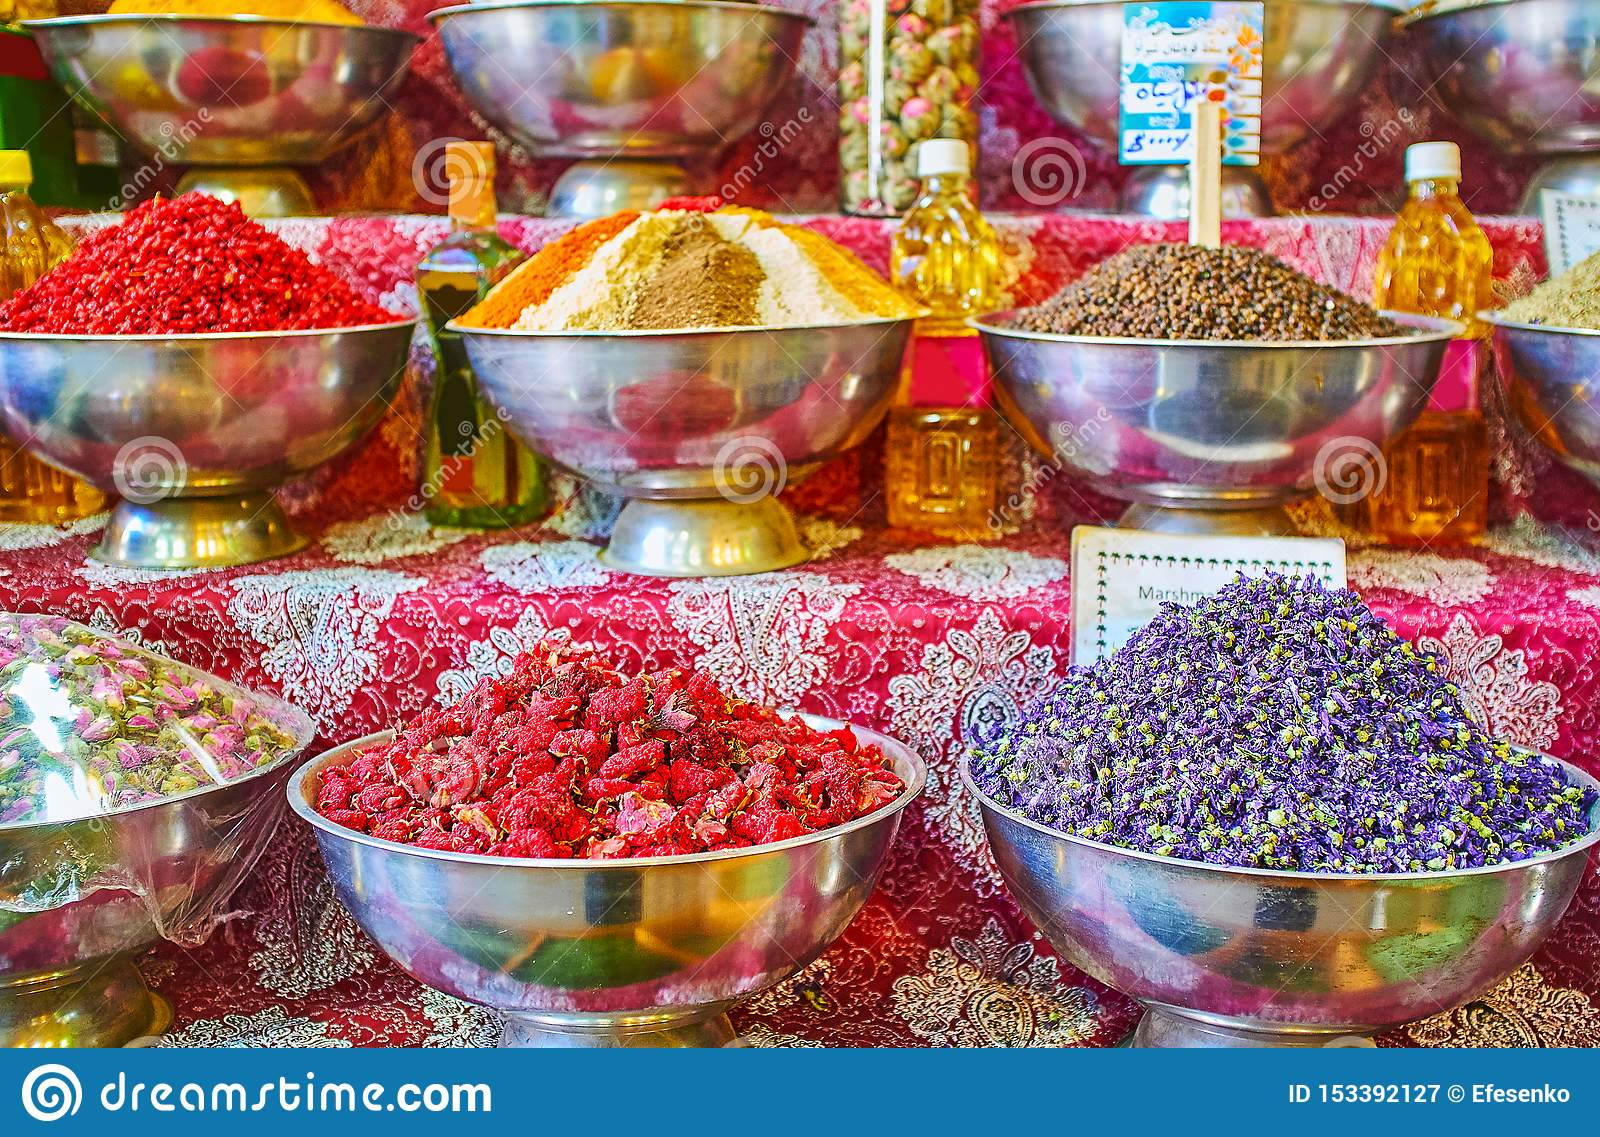 The bowls with dried flowers, Vakil Bazaar, Shiraz, Iran